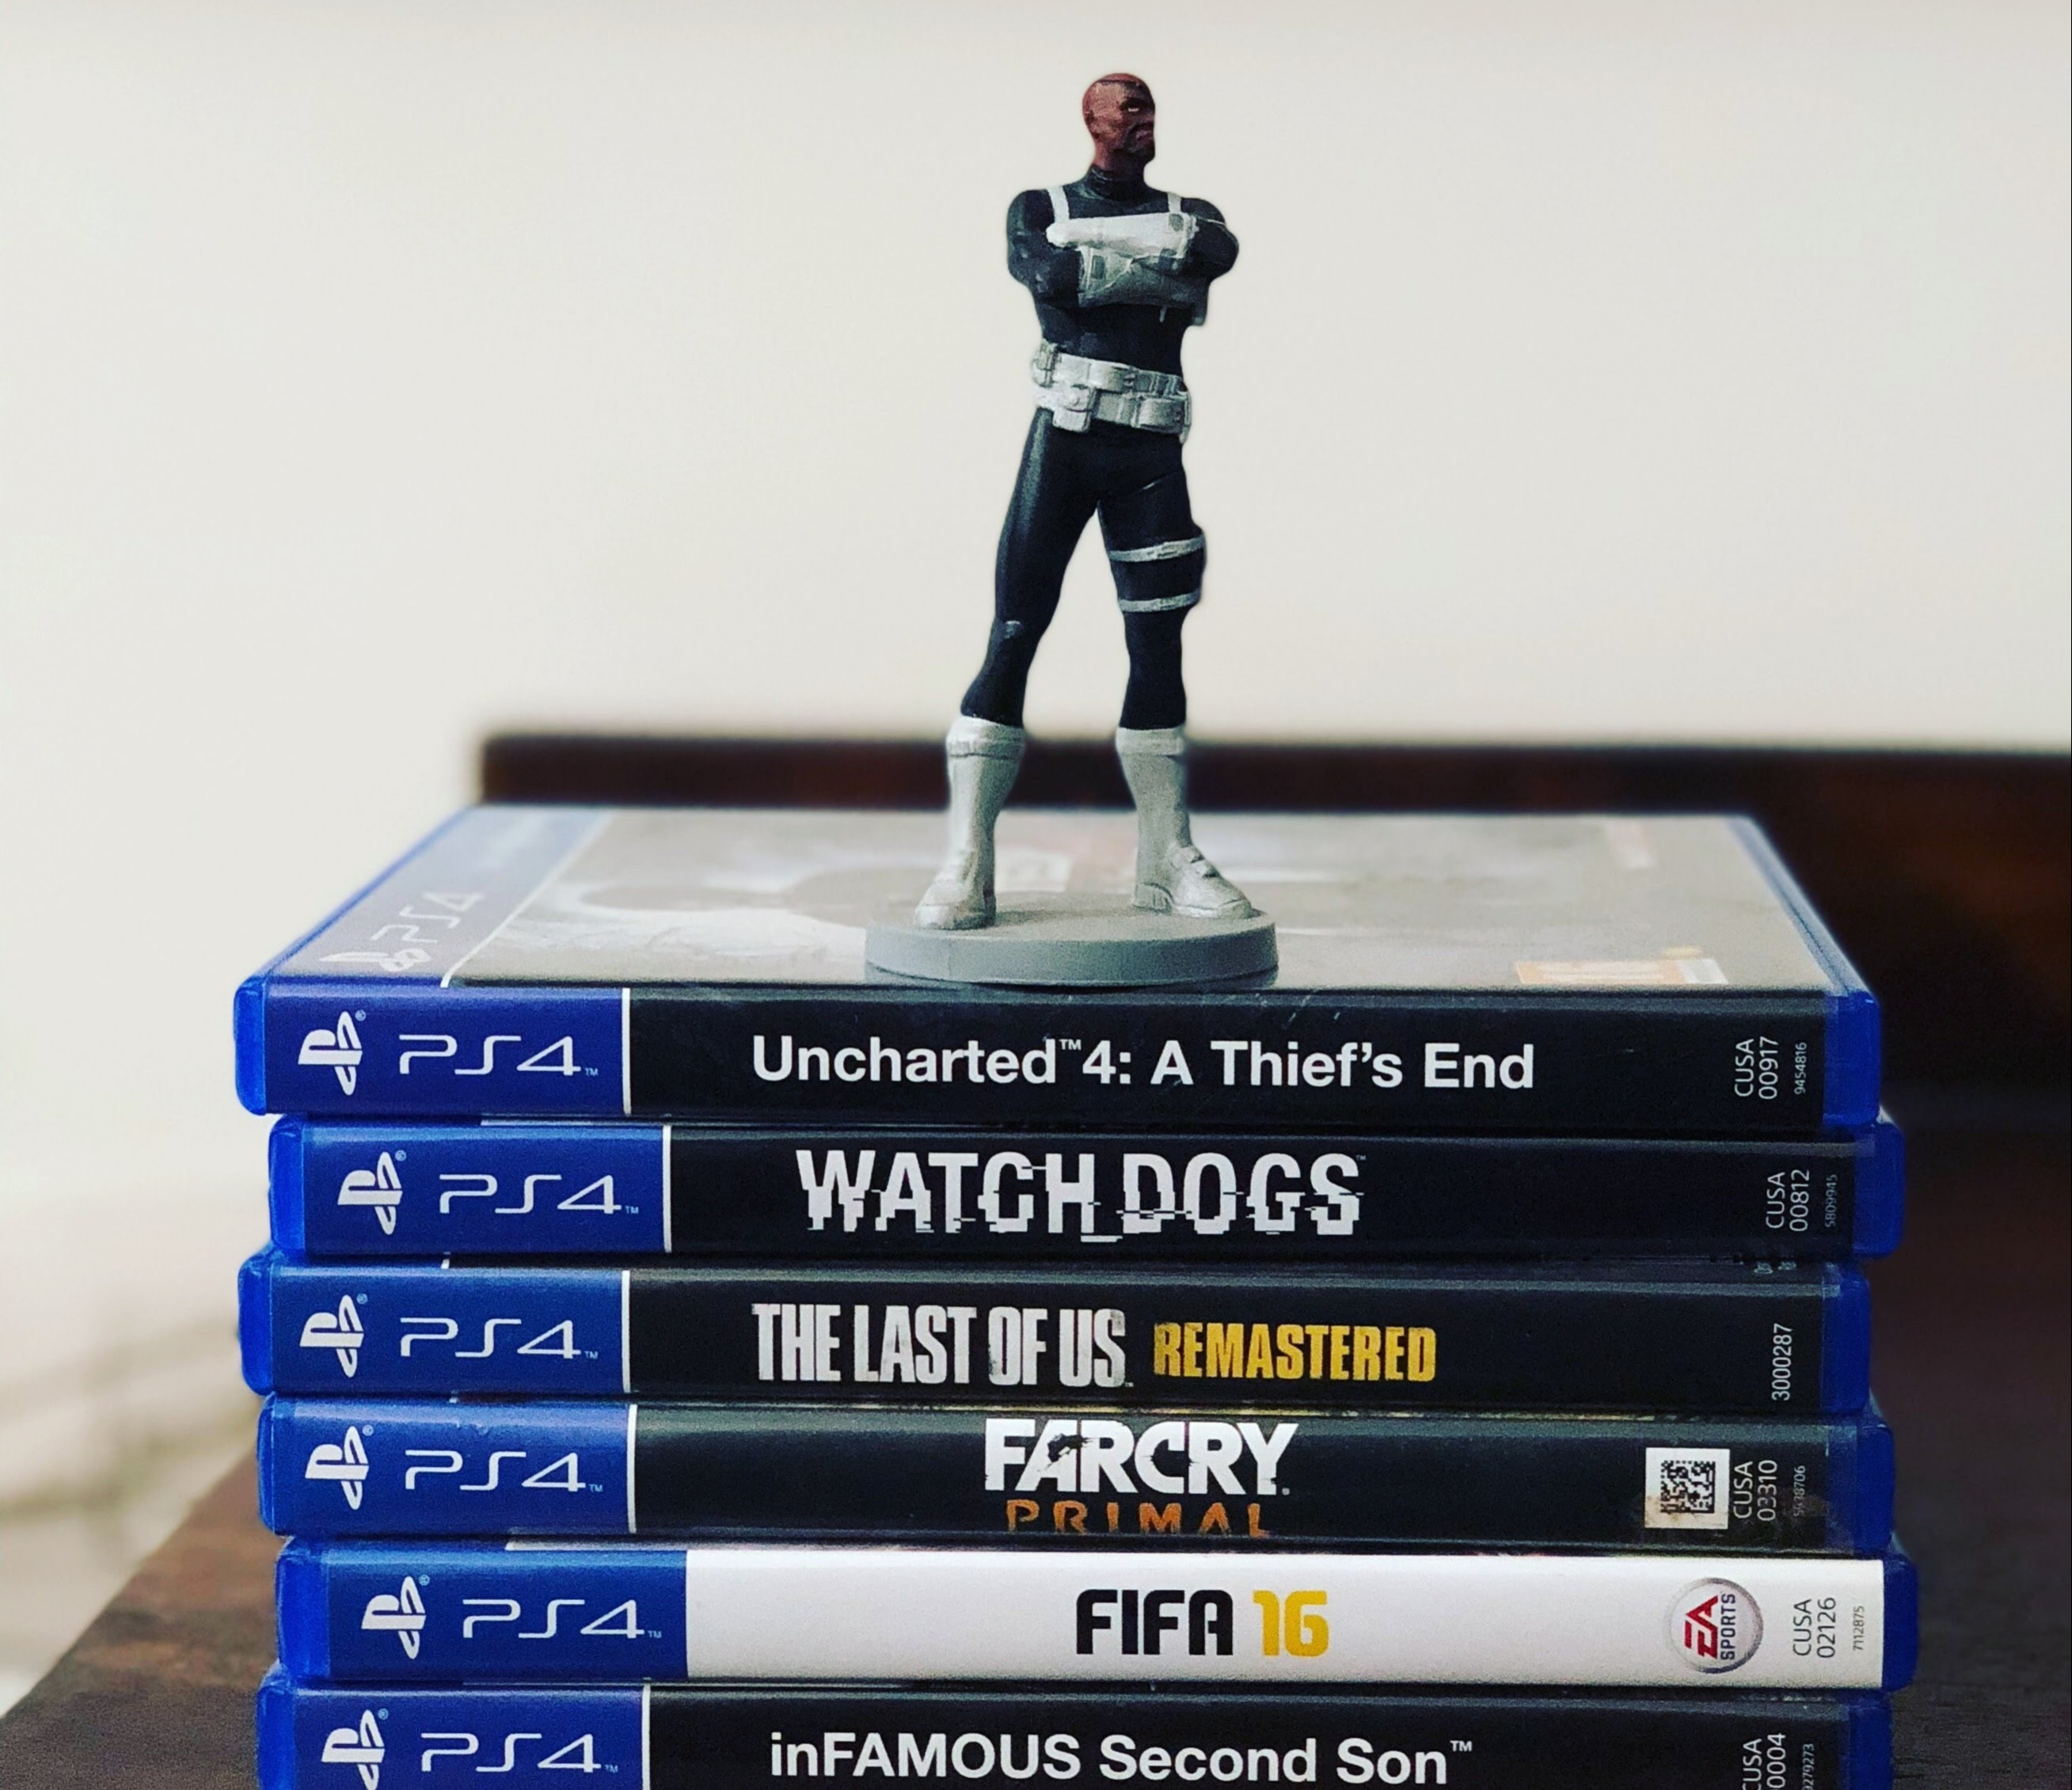 Stack of PlayStation 4 games with action figure